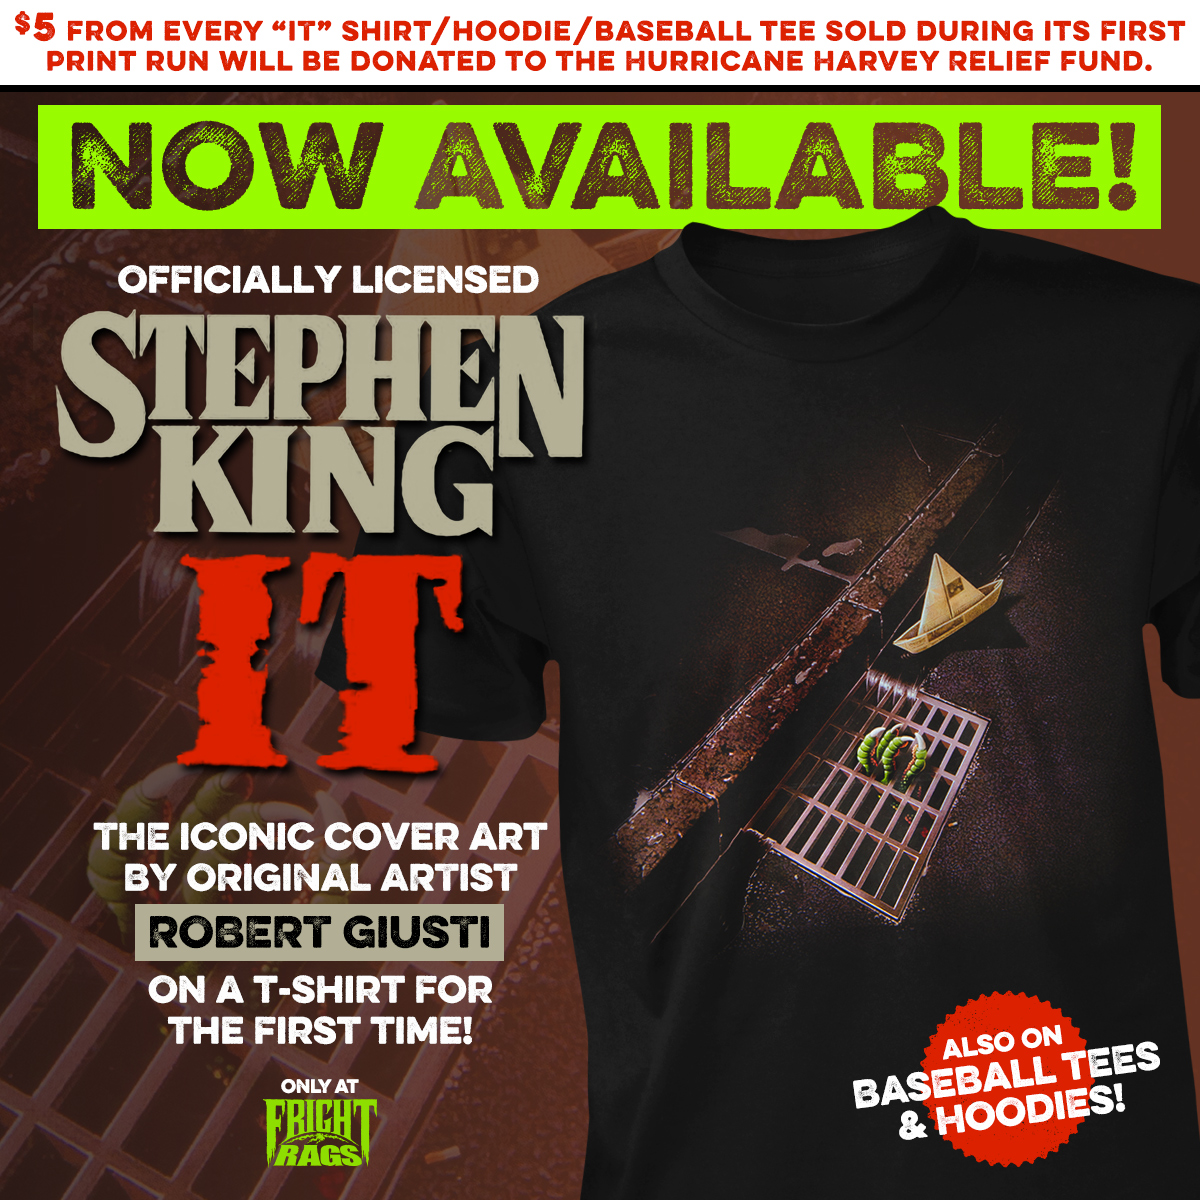 ac3b11af3 Fright-Rag releases Stephen King's IT cover art shirt, plus Halloween &  Hellraiser III collections $5 from every IT shirt donated to Hurricane  Harvey relief ...